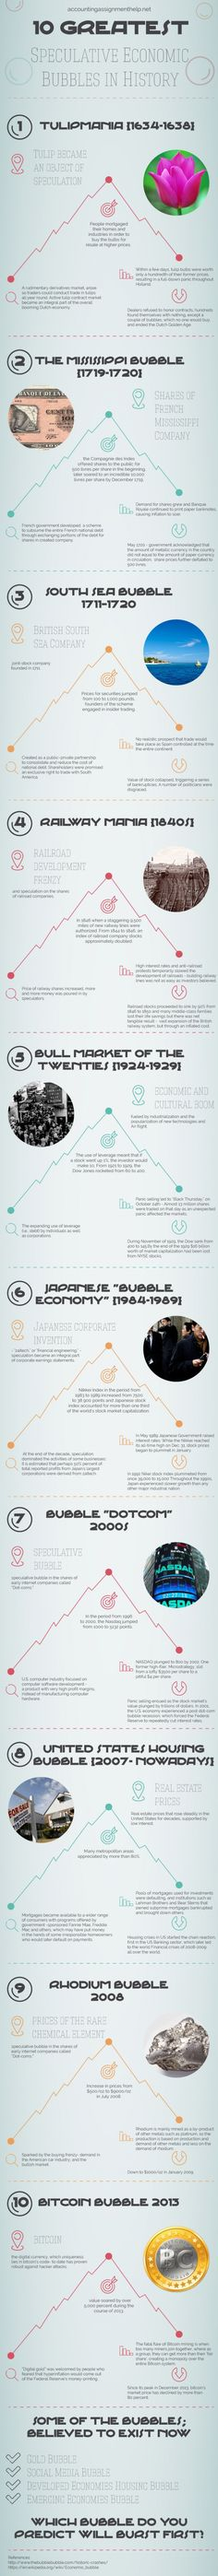 Ten Greatest Speculative Bubbles in History #Infographics